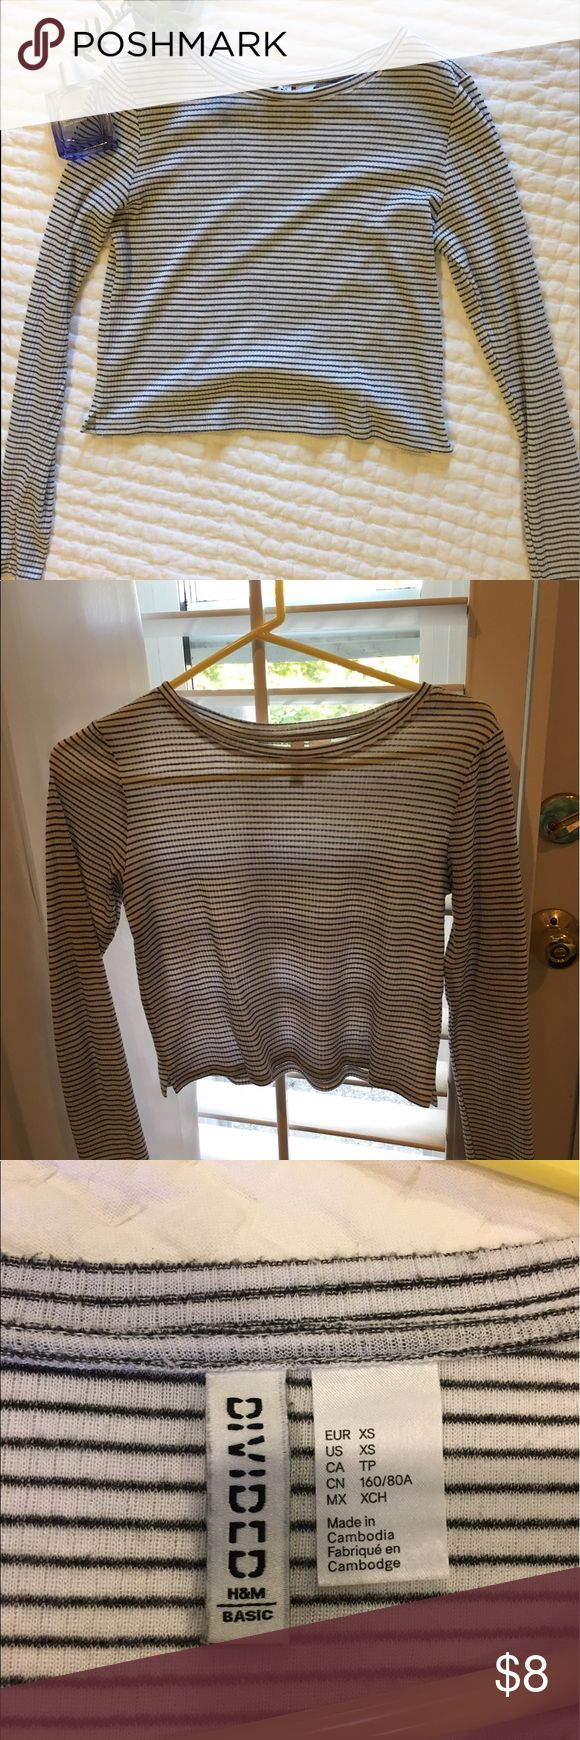 """H and M long sleeve crop top It is not too """"croppy"""" in length but it does show some skin. The stripes are black and white but suddle. The shirt has only been worn a couple times. No pilling or wear marks. In the picture with the window it shows that it can be see through but it is not too bad. The online picture is similar to the shirt I am selling here. Great with layers as well. Divided Tops Tees - Long Sleeve"""